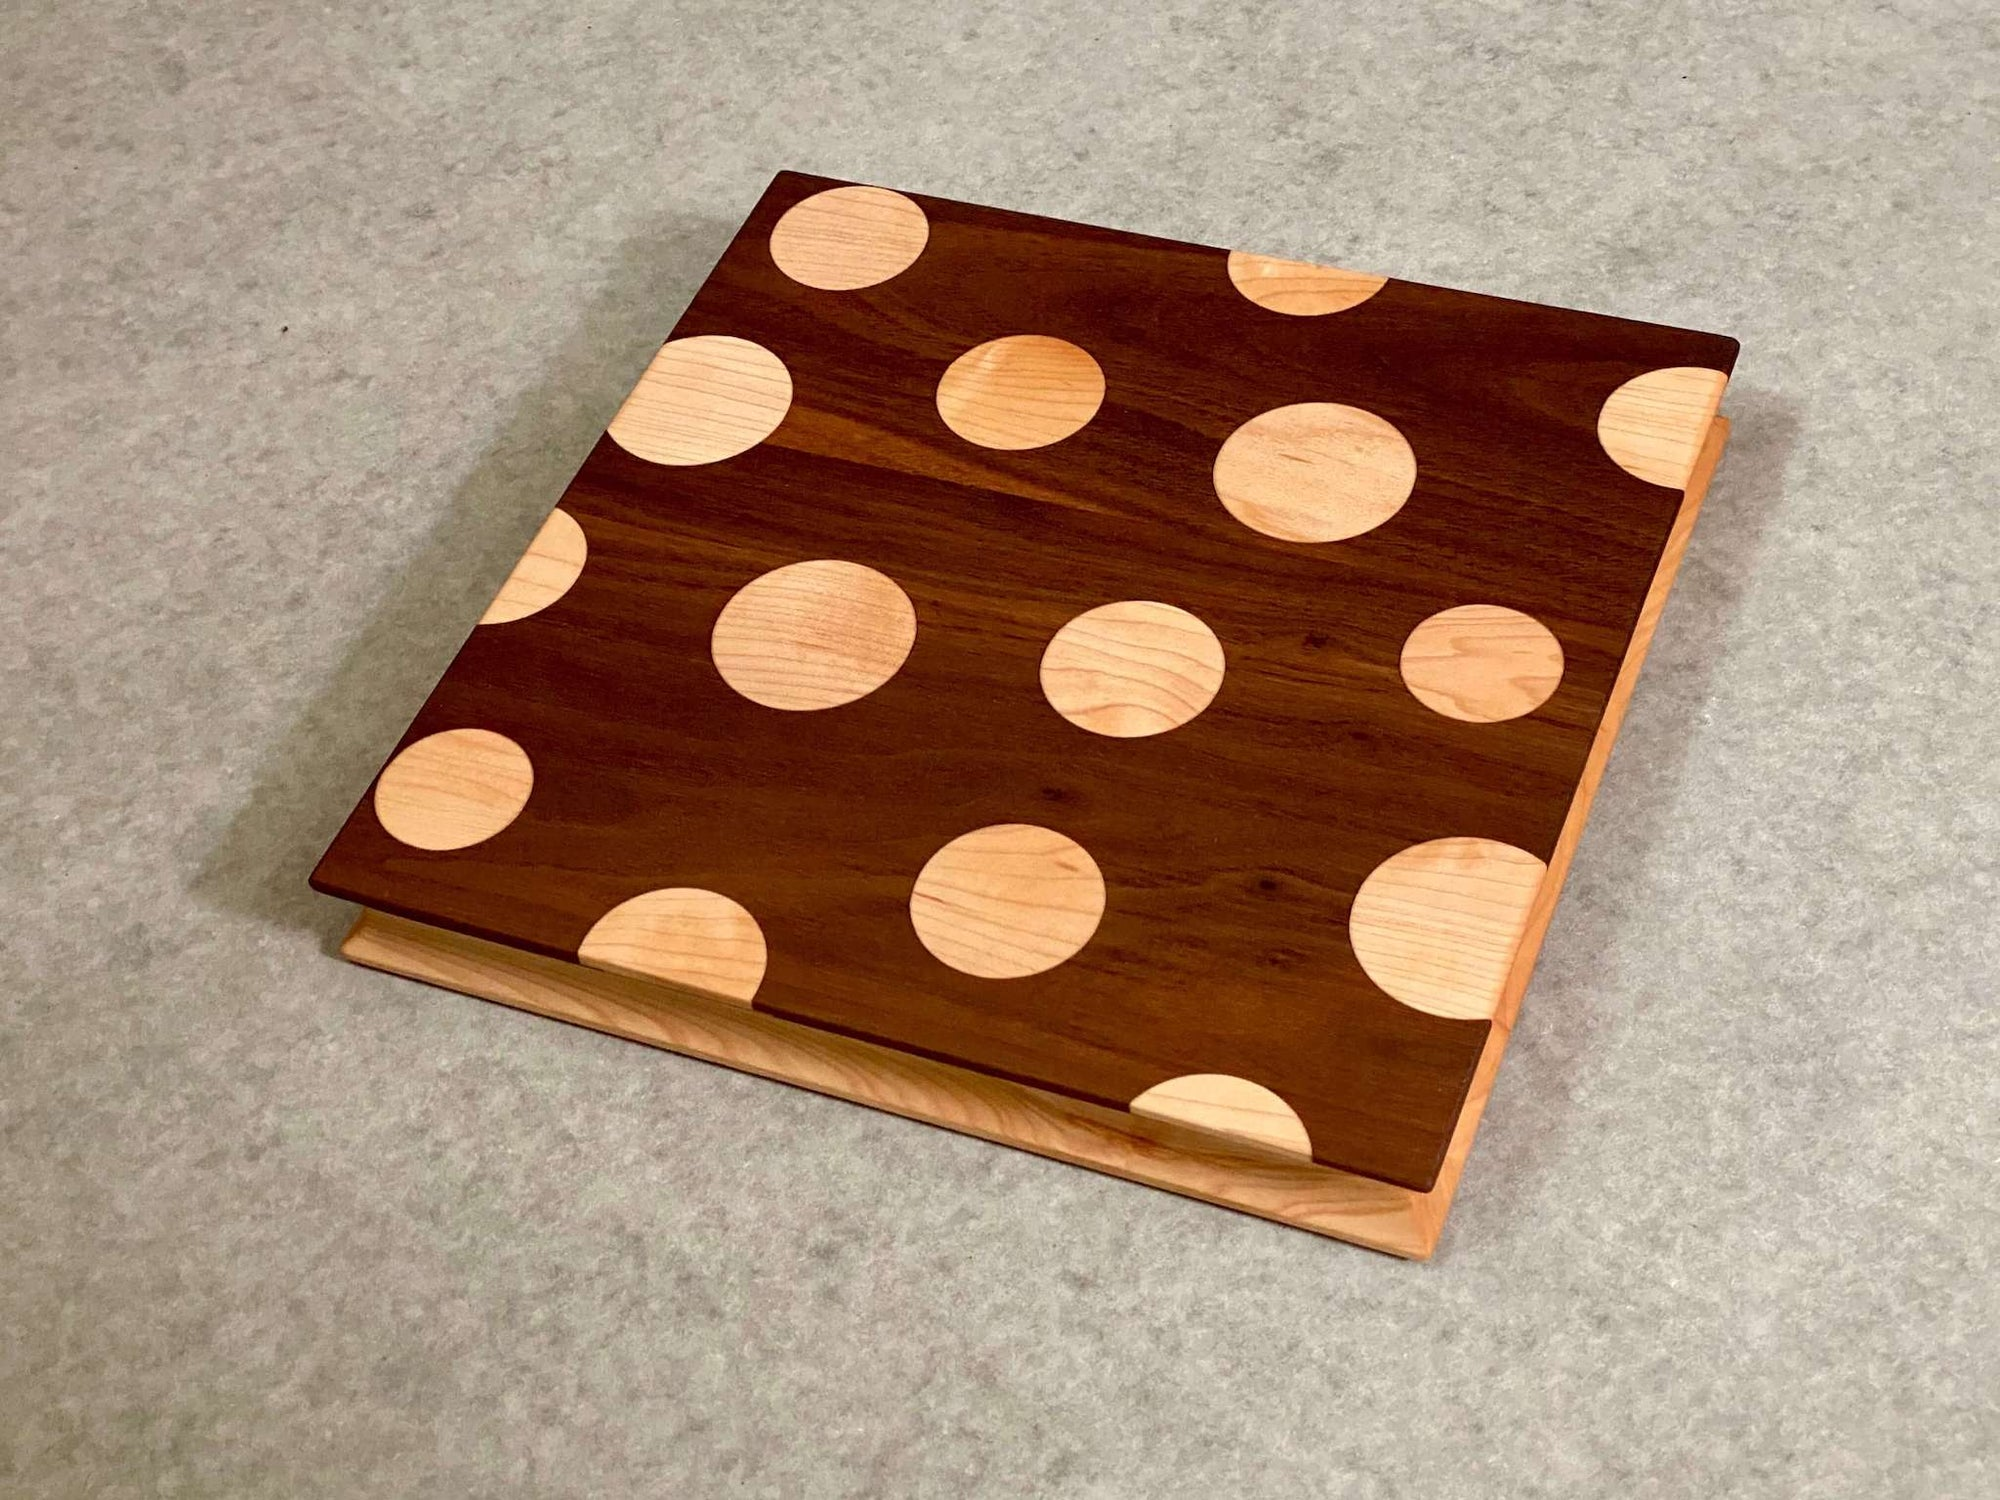 Square cutting and serving board made of walnut with inlaid maple polka dots on one side and solid maple on the reverse. Sculpted edges provide comfortable fingerholds.